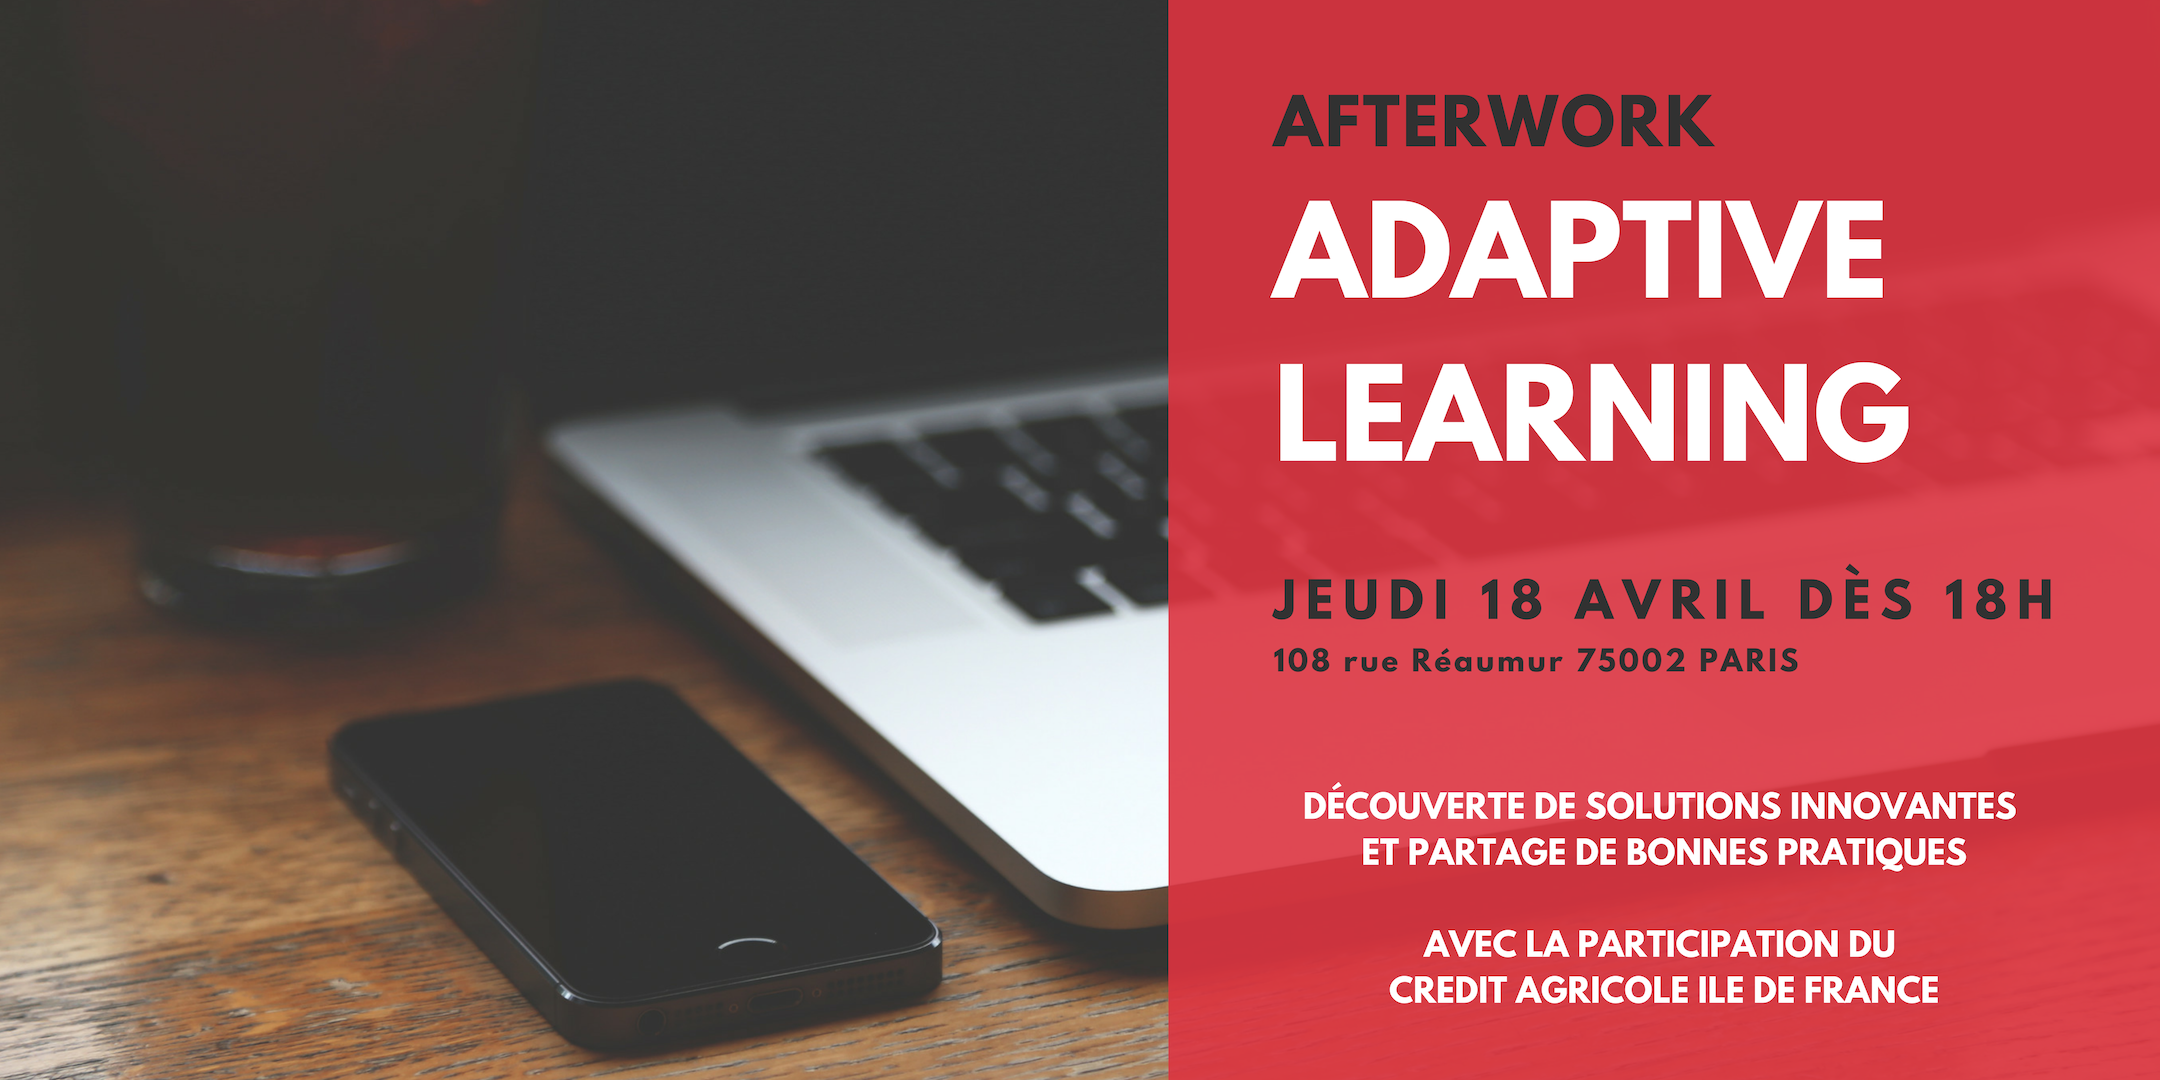 Afterwork Adaptive Learning le 18 avril